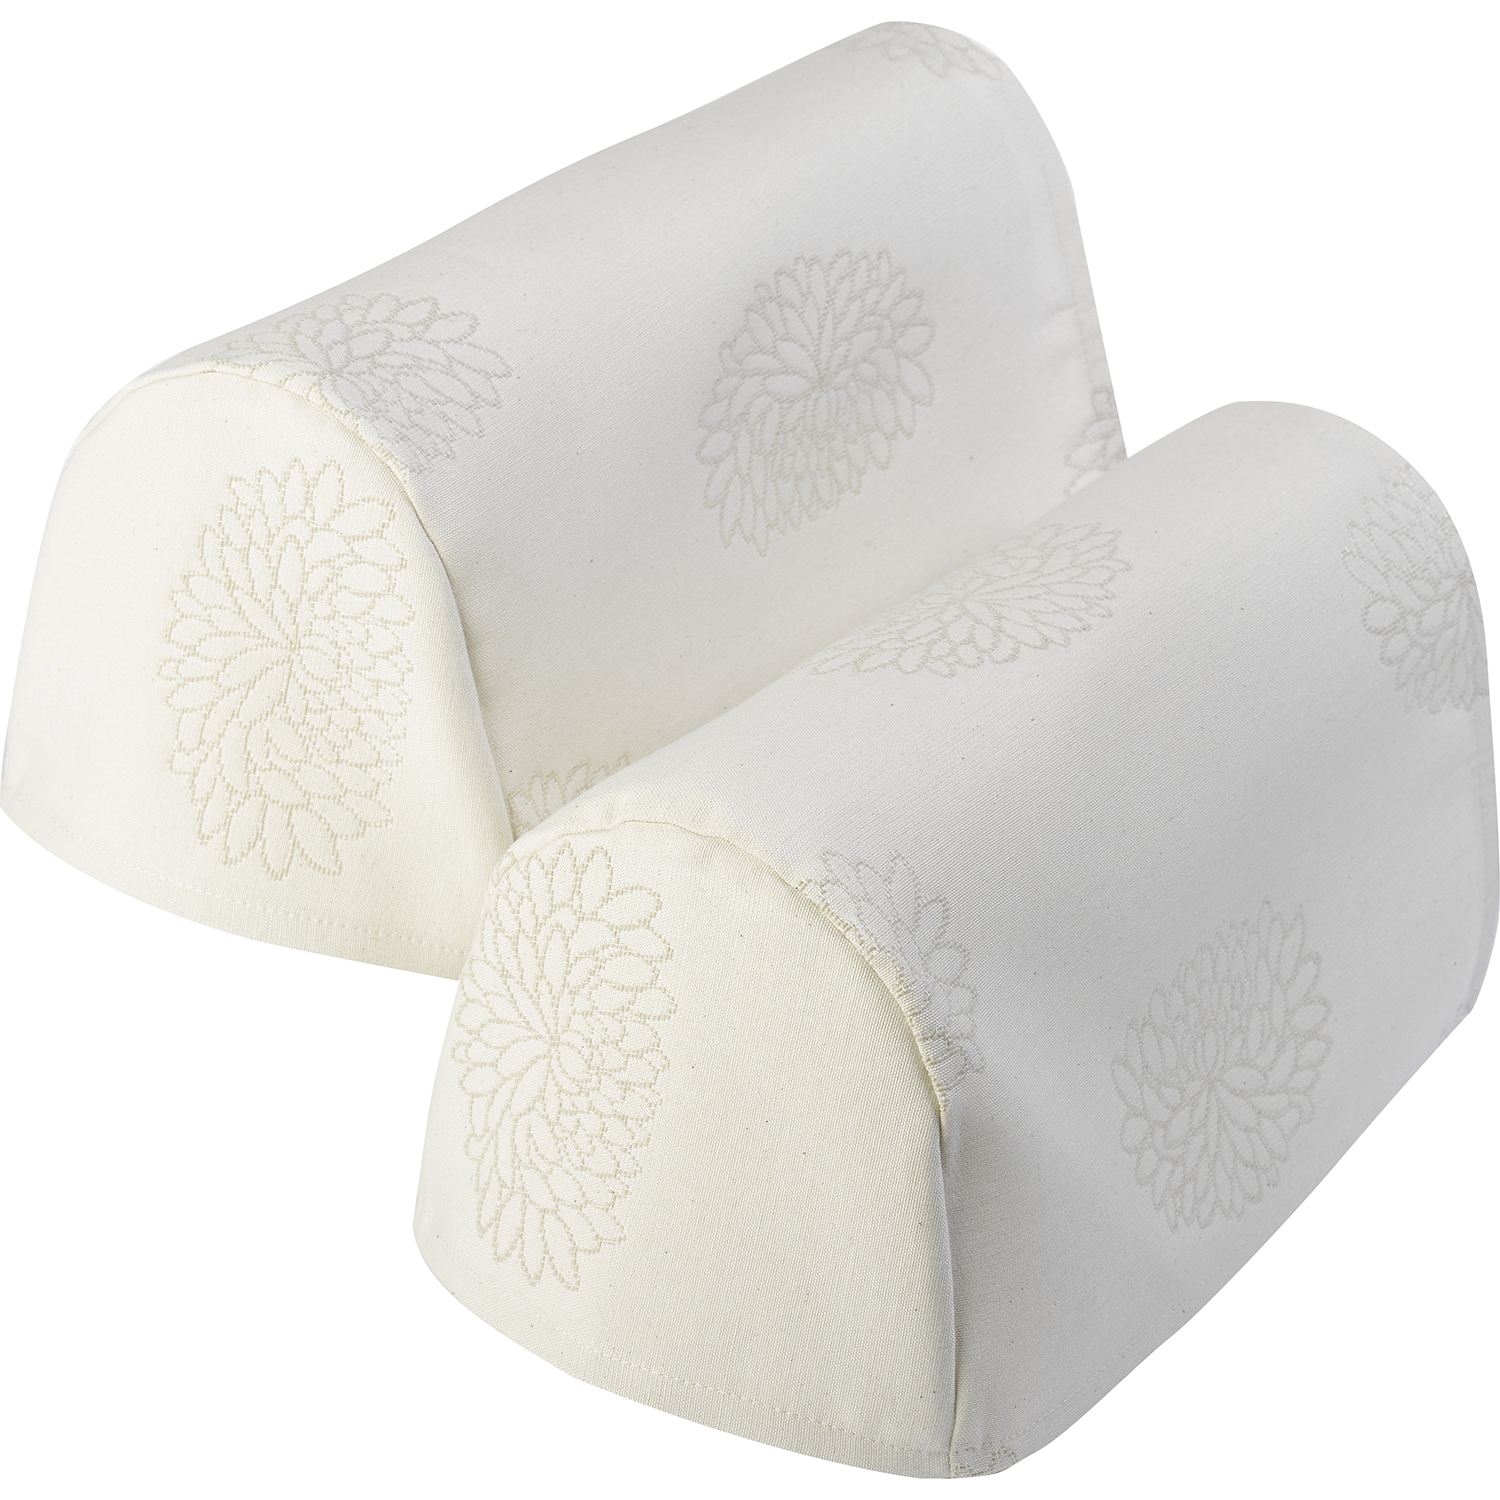 chair arm protectors avery's covers and more view full description